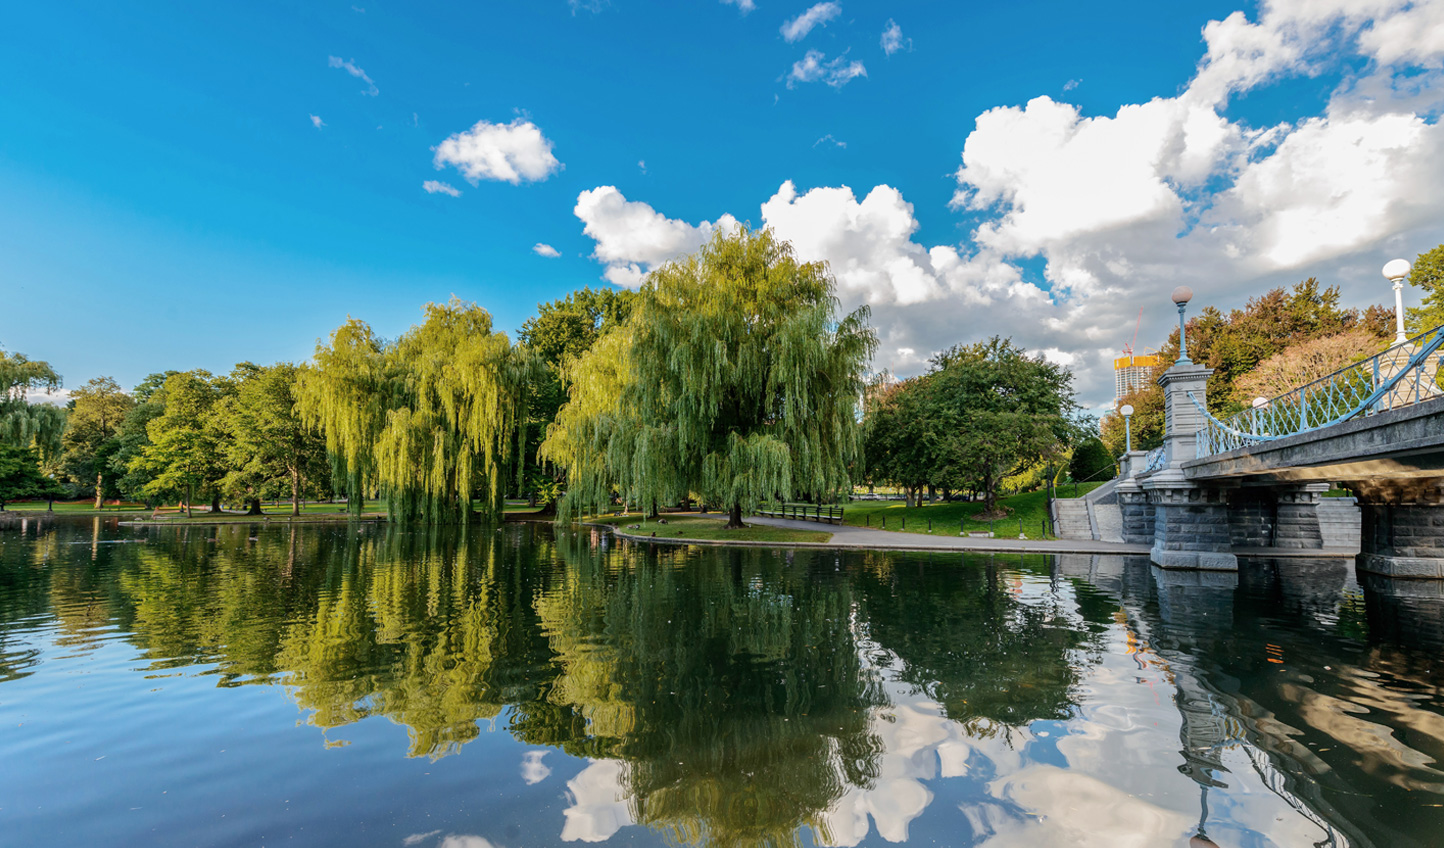 Stroll through Boston's very own 'Central Park'